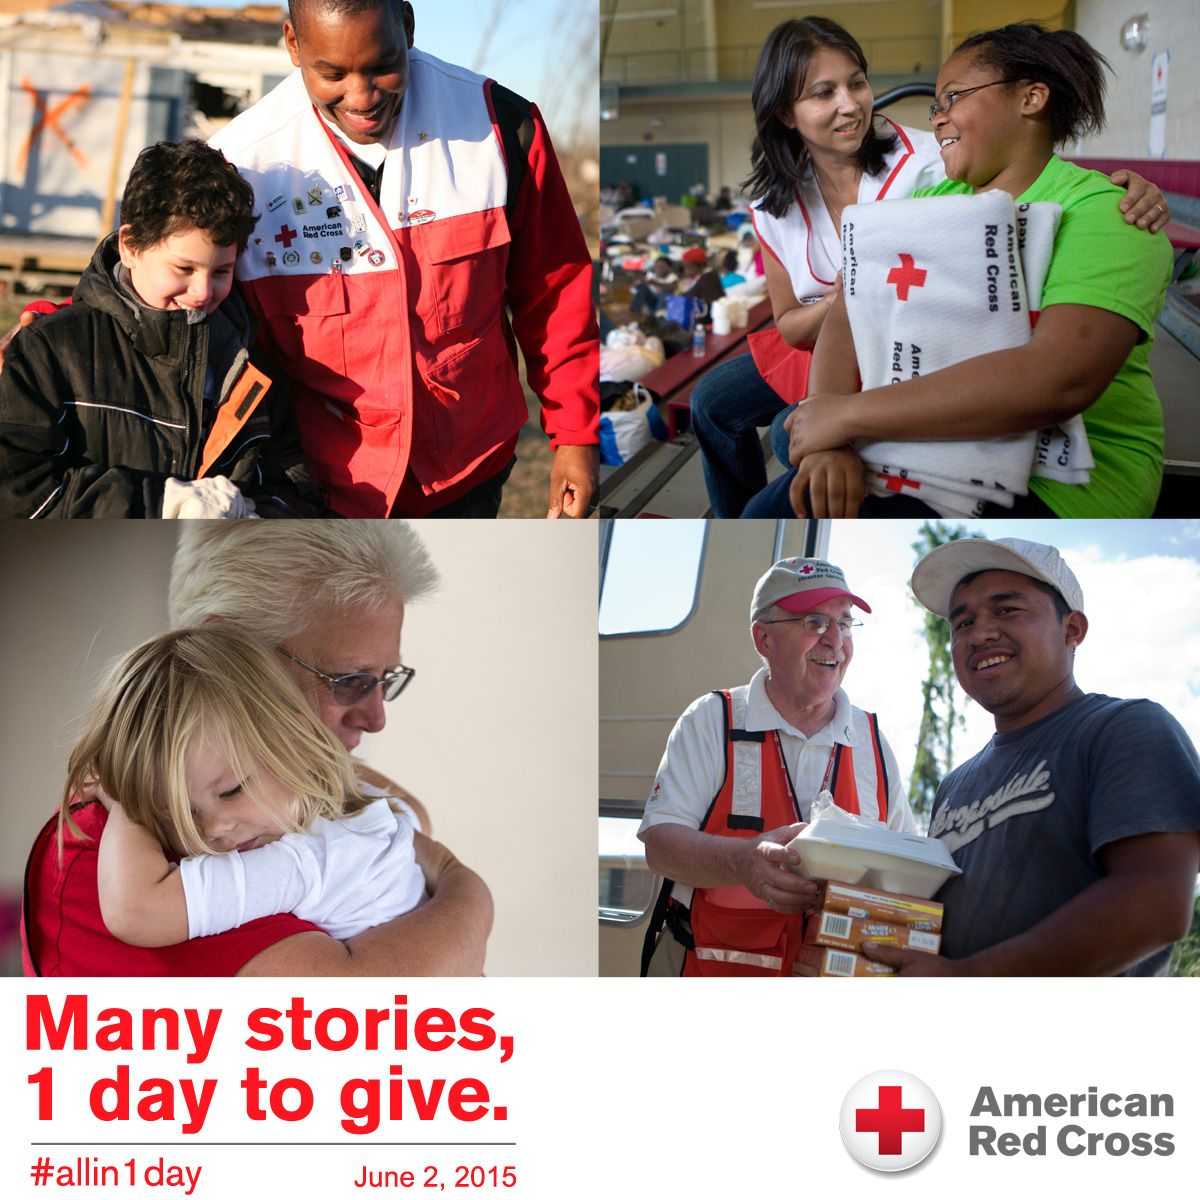 How has the red cross helped you in your time of need